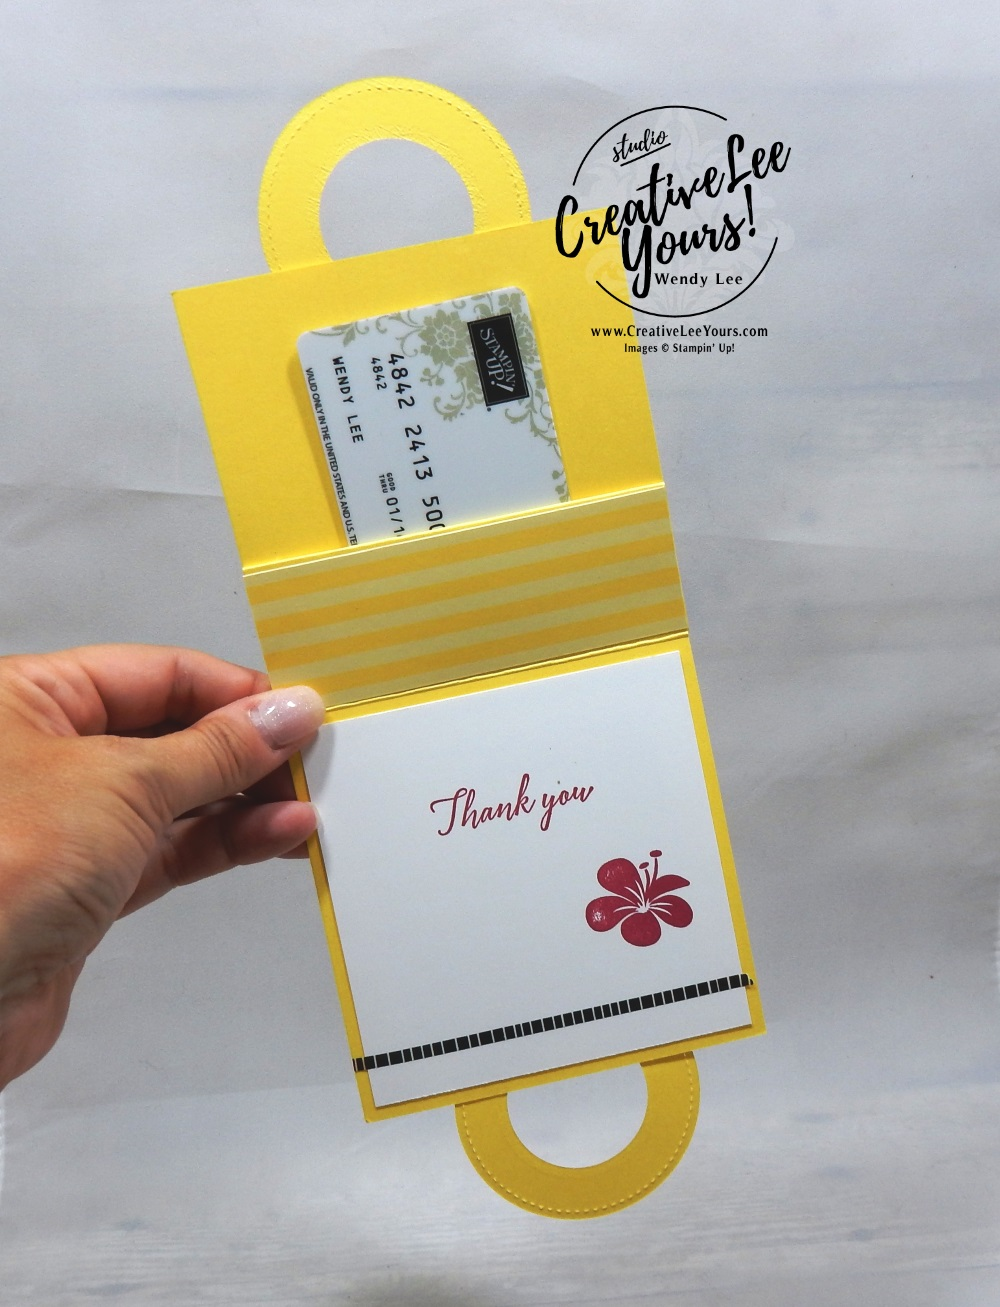 Tropical Gift Card Holder by Belinda Rodgers wendy lee, Stampin Up, stamping, handmade card, friend, thank you, birthday,  #creativeleeyours, creatively yours, creative-lee yours, diemonds team swap, tropical chic stamp set, SU, SU cards, rubber stamps, fun fold, gifts